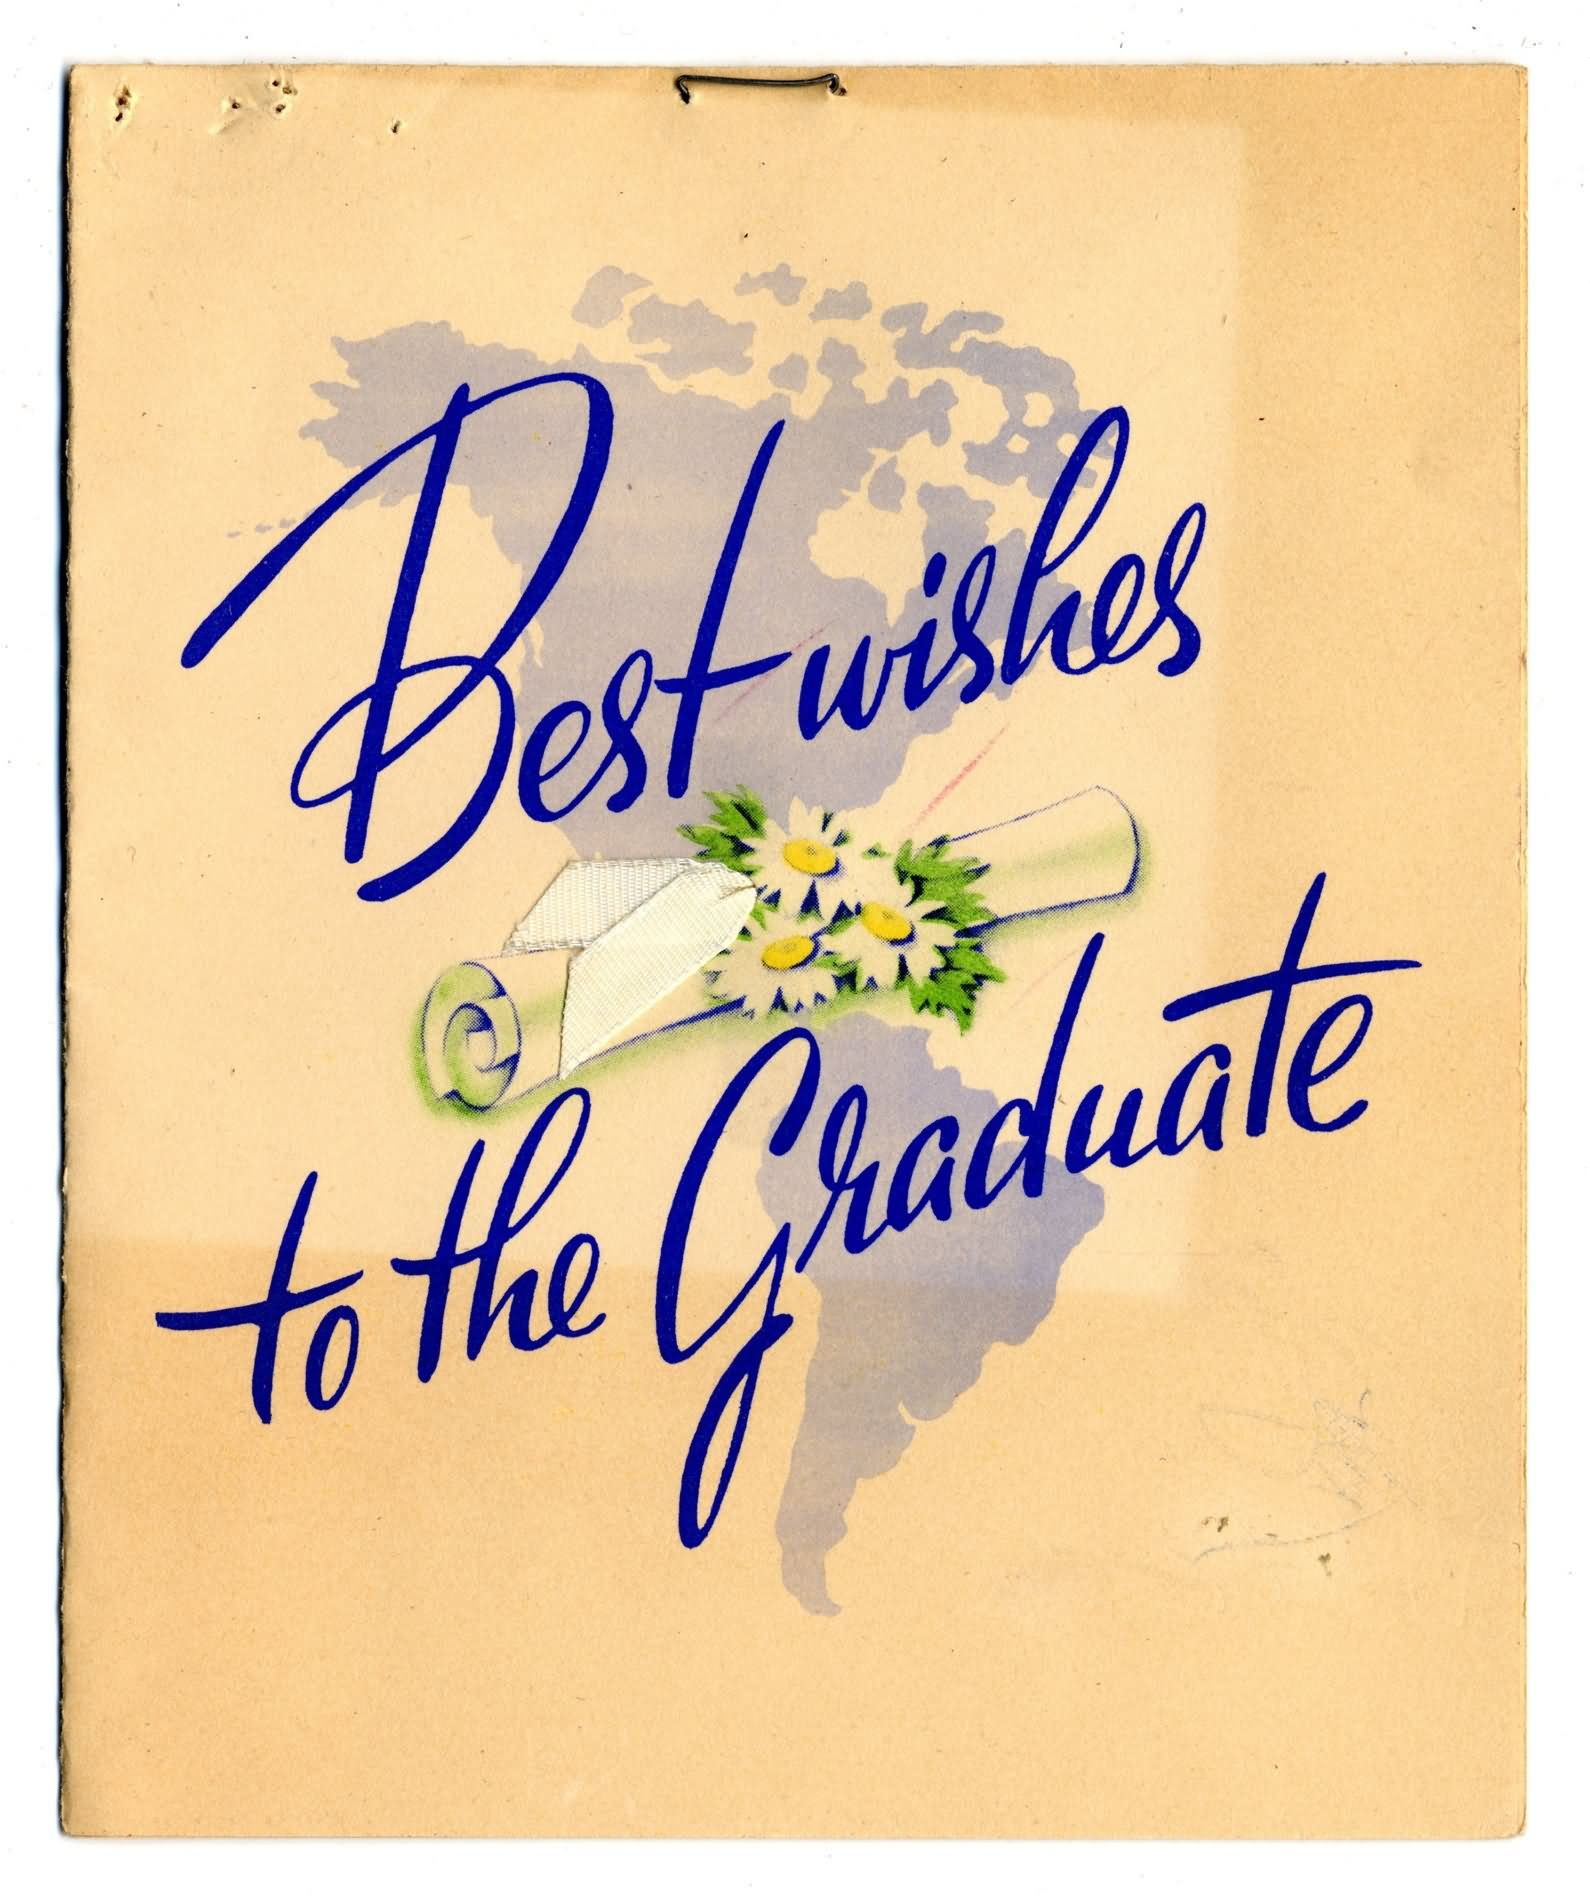 26 best graduation wishes picture best wishes to the graduate kristyandbryce Gallery